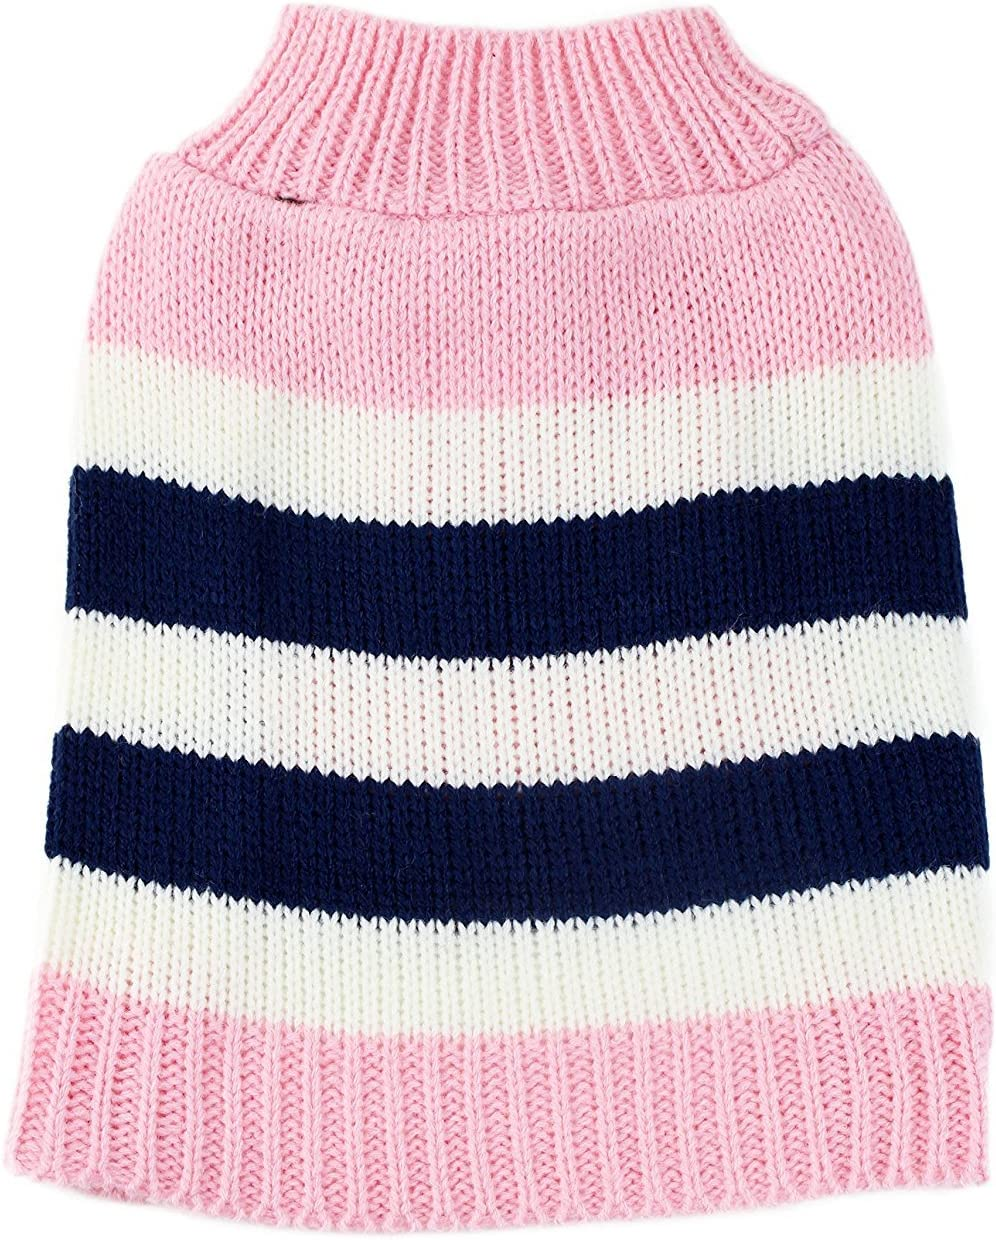 Midlee Ranking TOP19 Pink Striped Colorblock Sweater Dog X-Large All items in the store